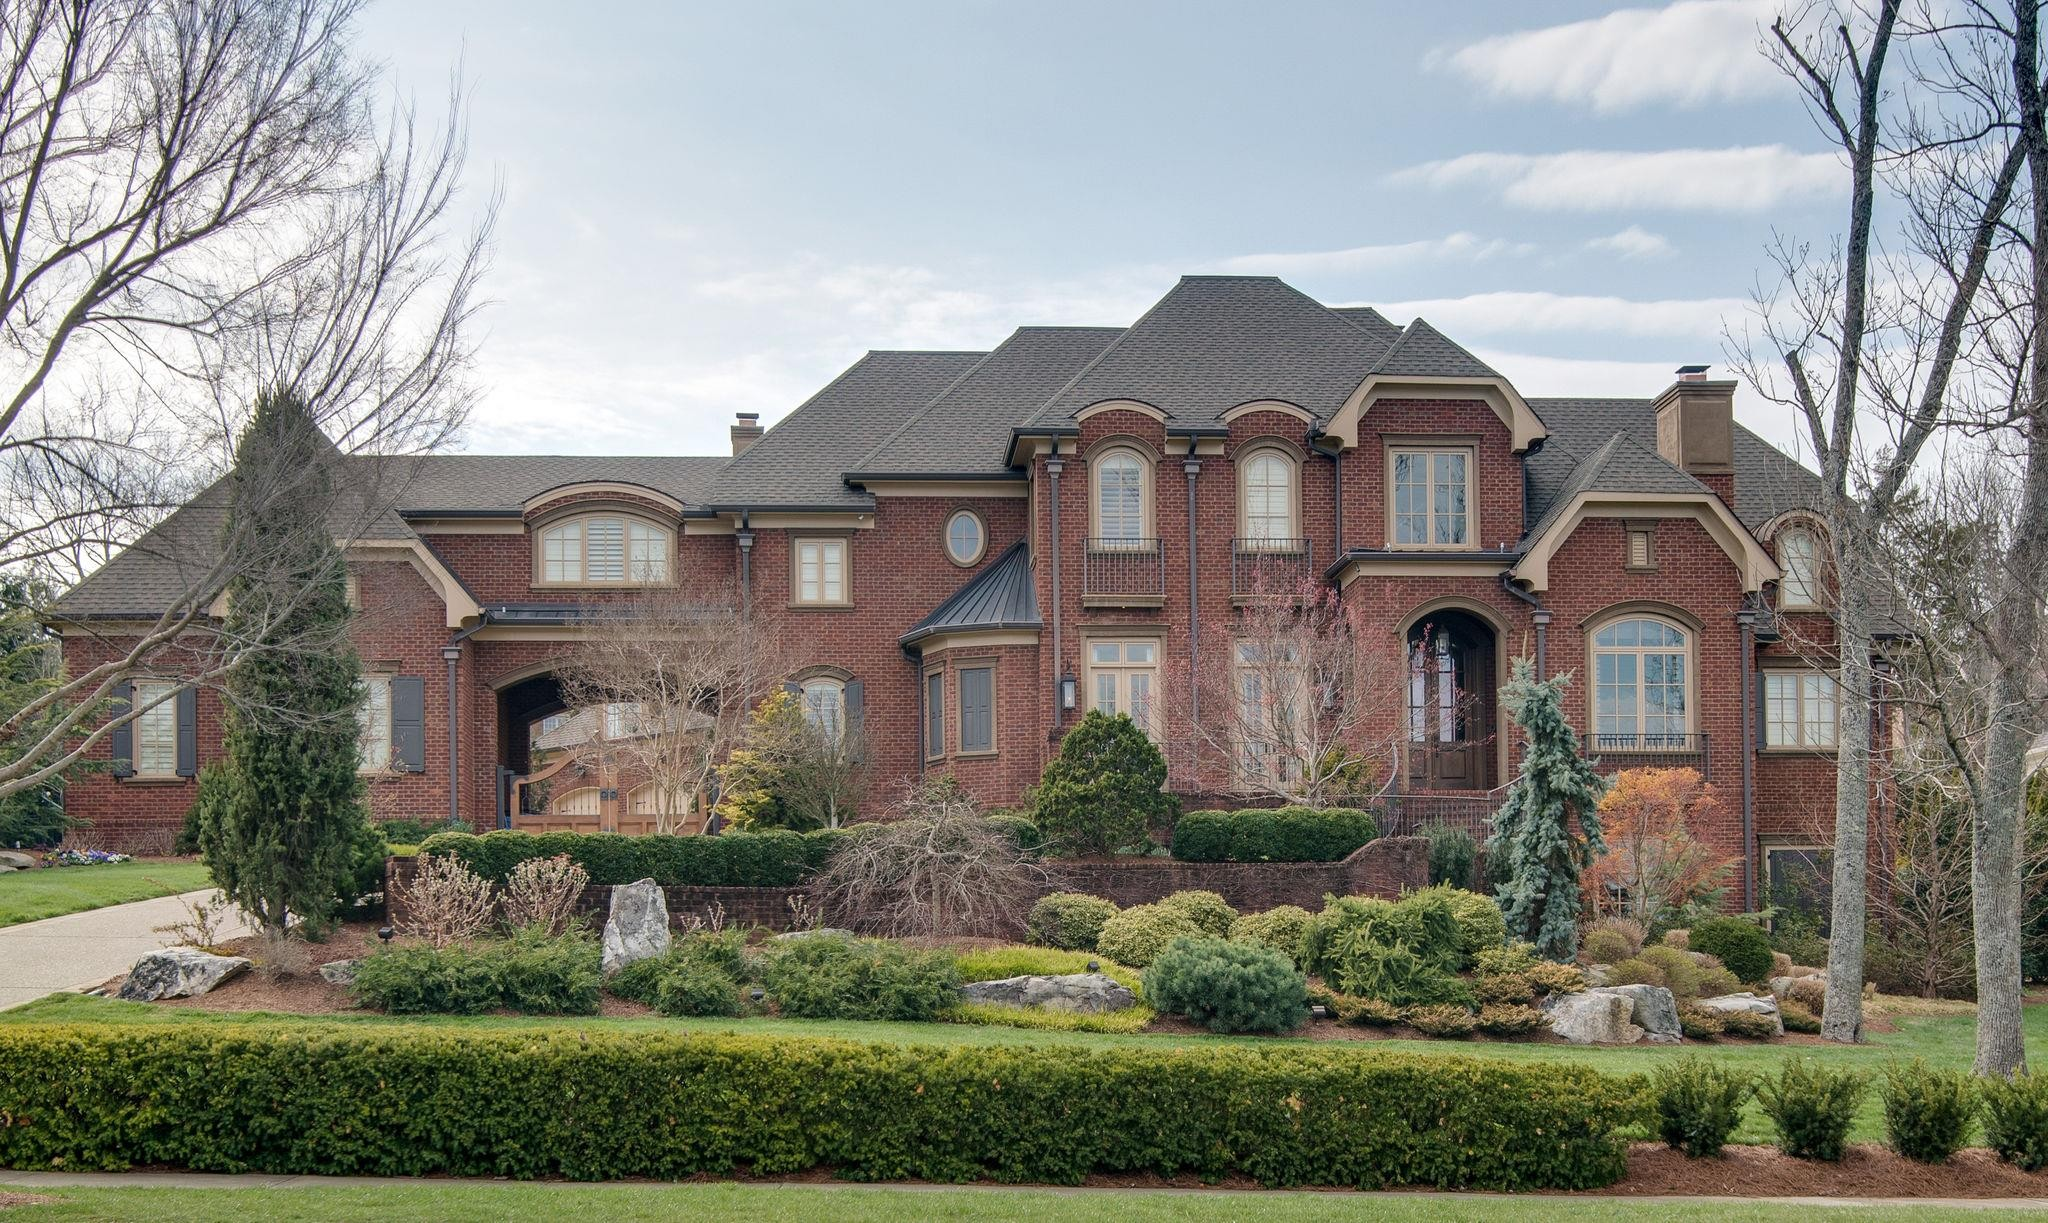 Fabulous European style home on private 1+acre lot. Cooks kitchen w/Calcutta Gold marble open to breakfast & family room. Walnut hardwoods, theater, resort pool w/slide, cabana w/outdoor kitchen, f/p & bath. Irish pub, wine cellar, safe room and in-law suite. Updated master bath, picture coming soon.